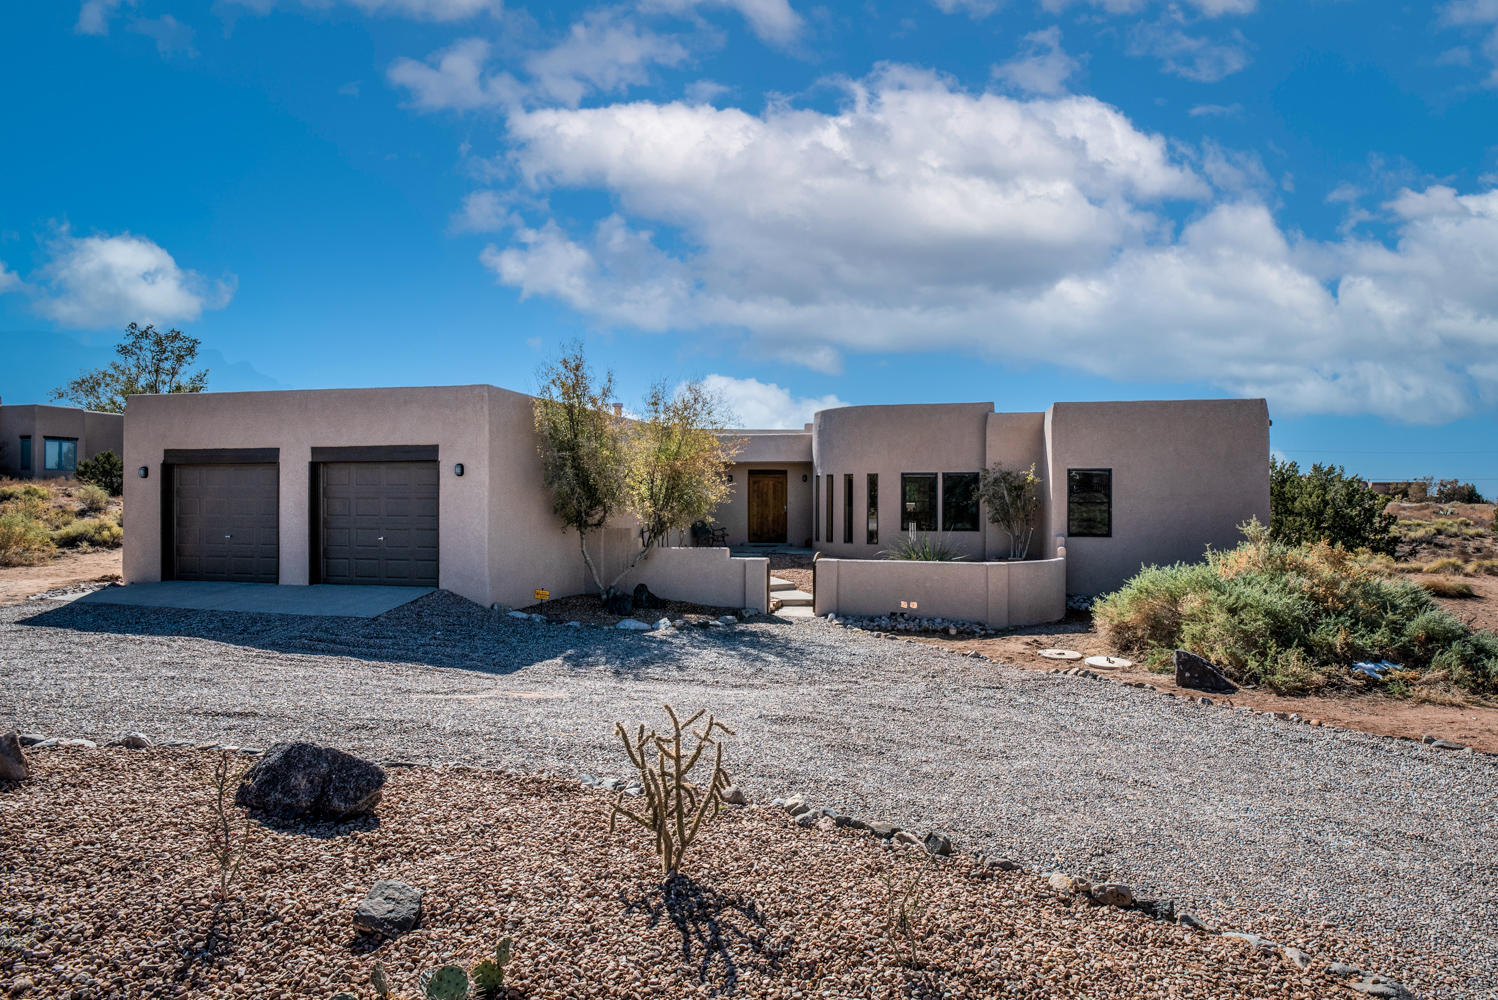 Single level custom southwest style home on 1.29 acre lot in Placitas.  The beauty and open space of Placitas in a convenient location just over one mile from I-25 with easy access to both Albuquerque & Santa Fe. High ceilings & abundant light throughout. Well laid out for entertaining both summer and winter. Custom kitchen w/pecan cabinetry, double oven, gas cooktop, island and informal dining area. Kitchen, formal dining room and master bedroom all access backyard and patio with ever-changing views of the Sandia mountains.  Thoughtful floorplan with master suite, including attached office/nursery, separated from the two ensuite bedrooms. Comfort not a concern with in-floor radiant heat, two newer (2 years) refrigerated air units,and 2 fireplaces. New roof and new stucco. OPEN 2-4 SUNDAY